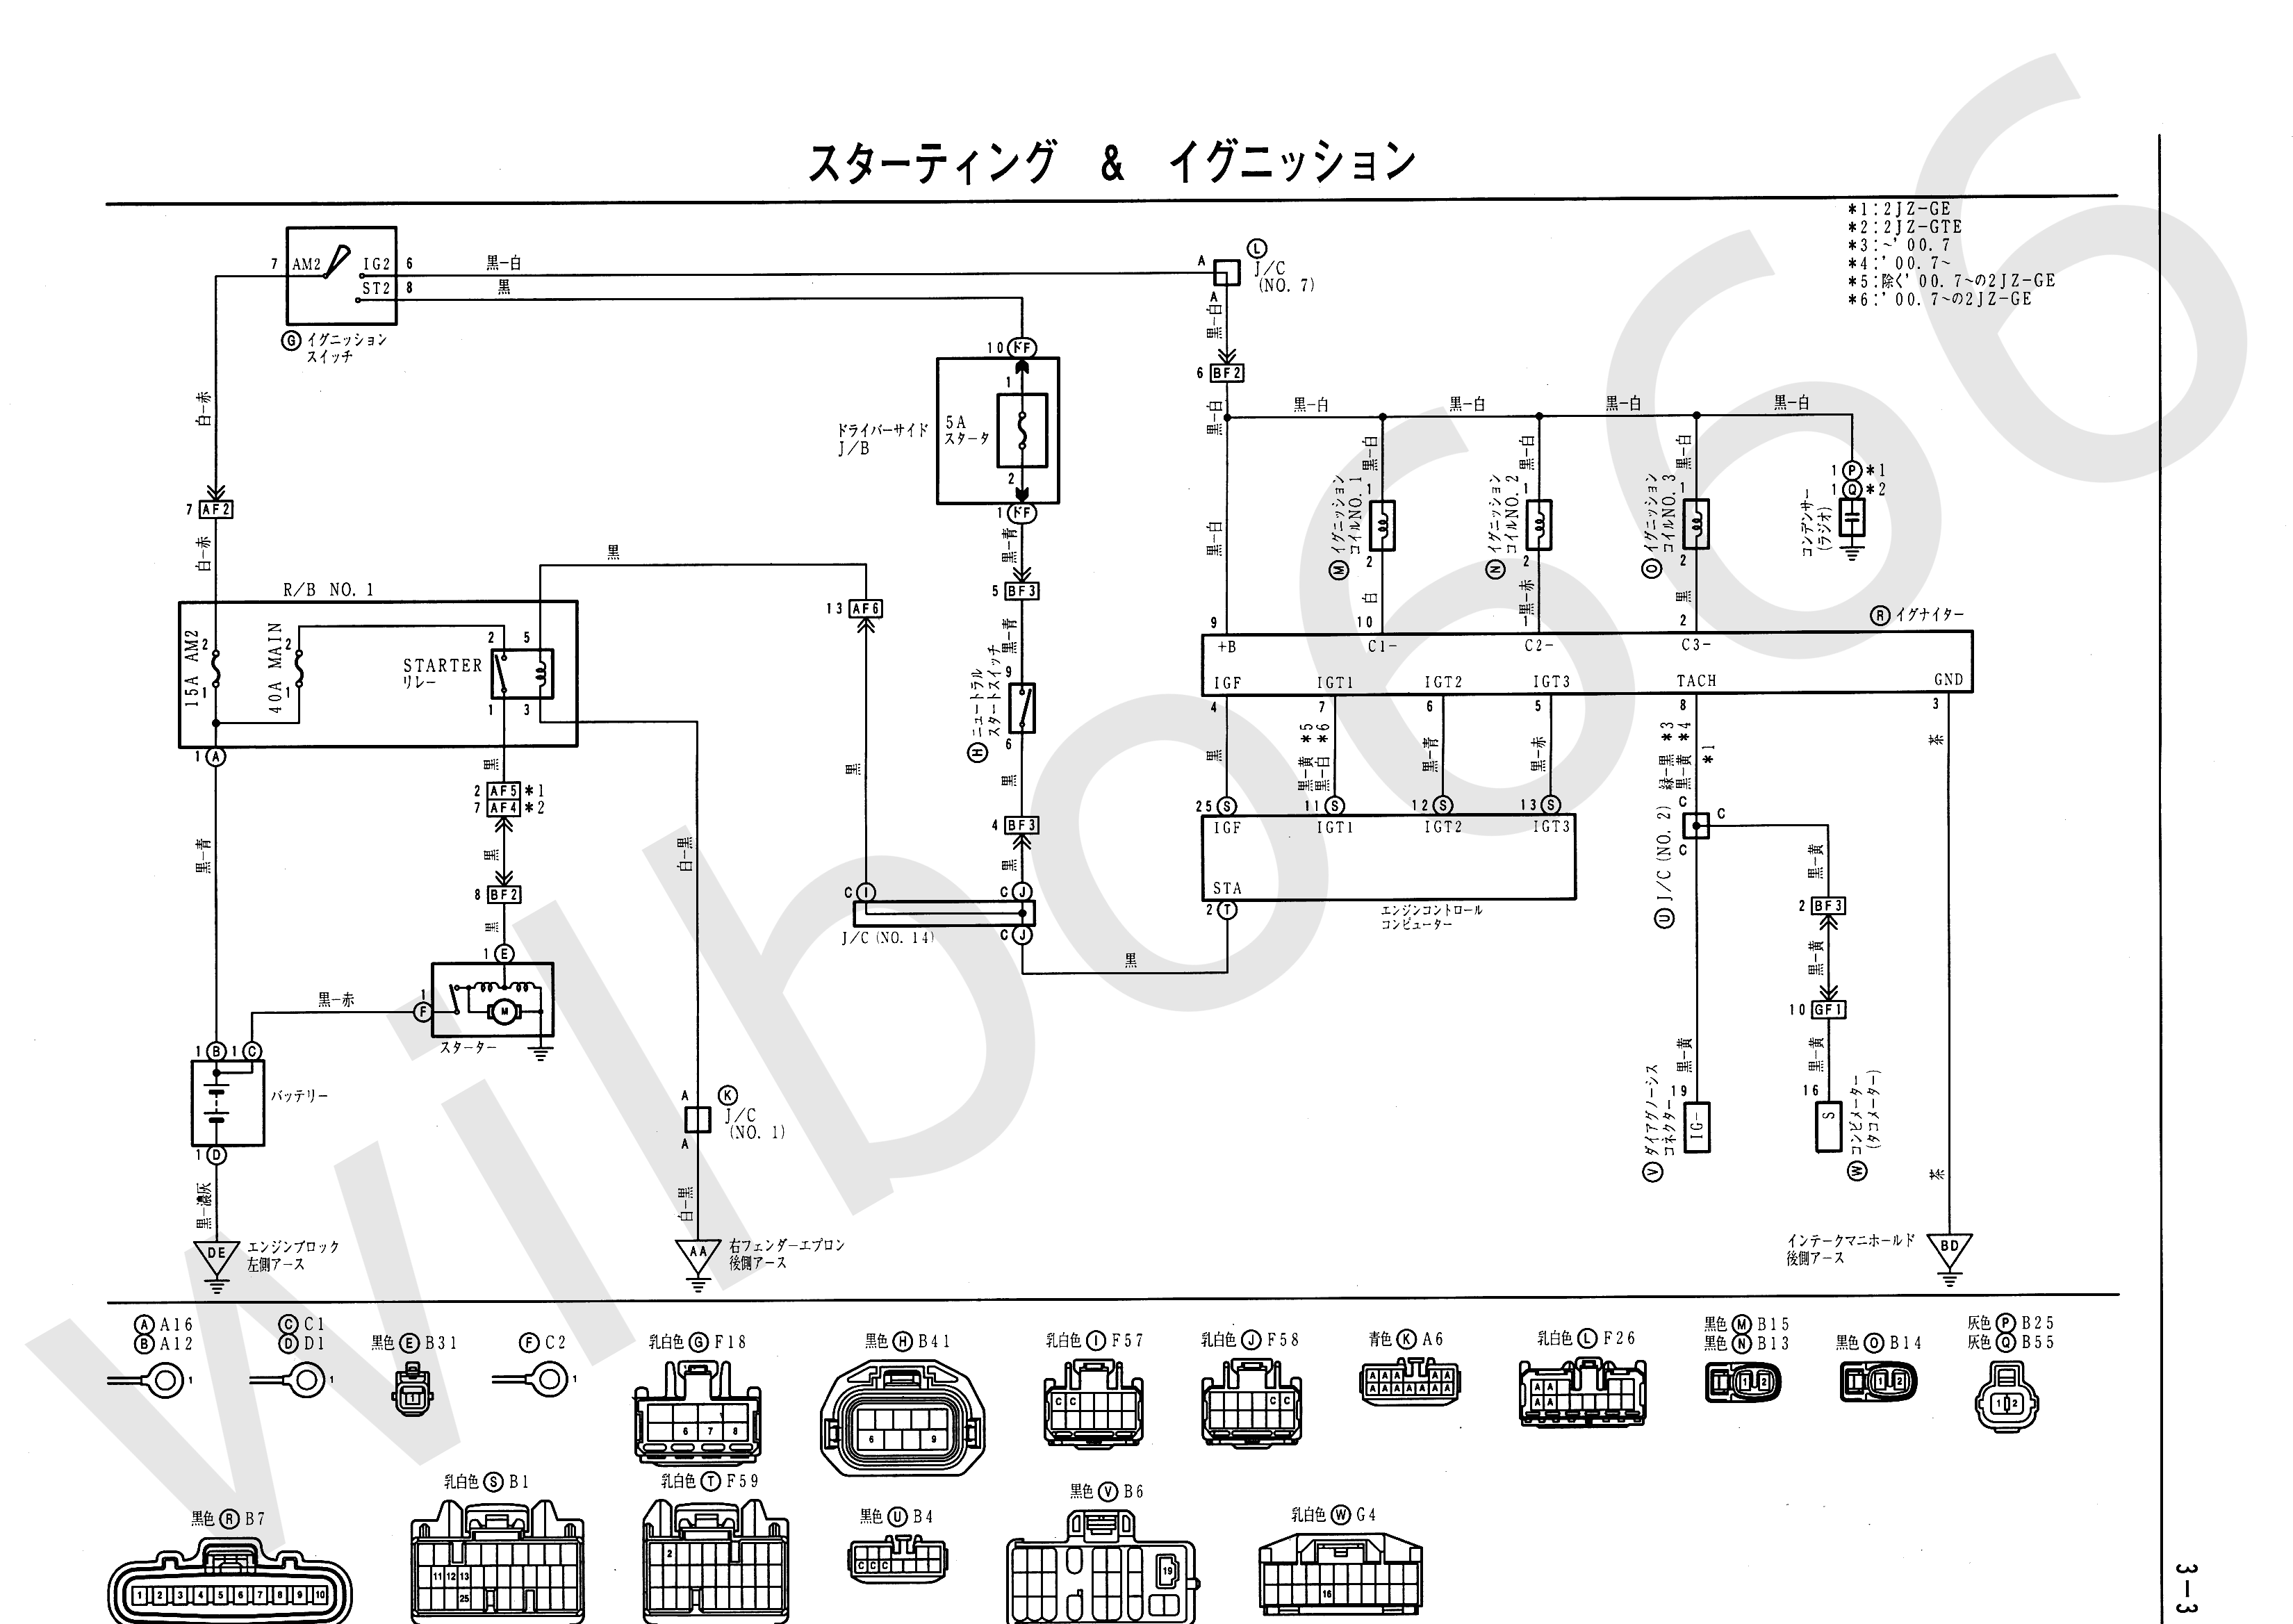 2jz wiring diagram vaillant ecotec plus 824 r1 wilbo666 gte vvti jzs161 aristo engine